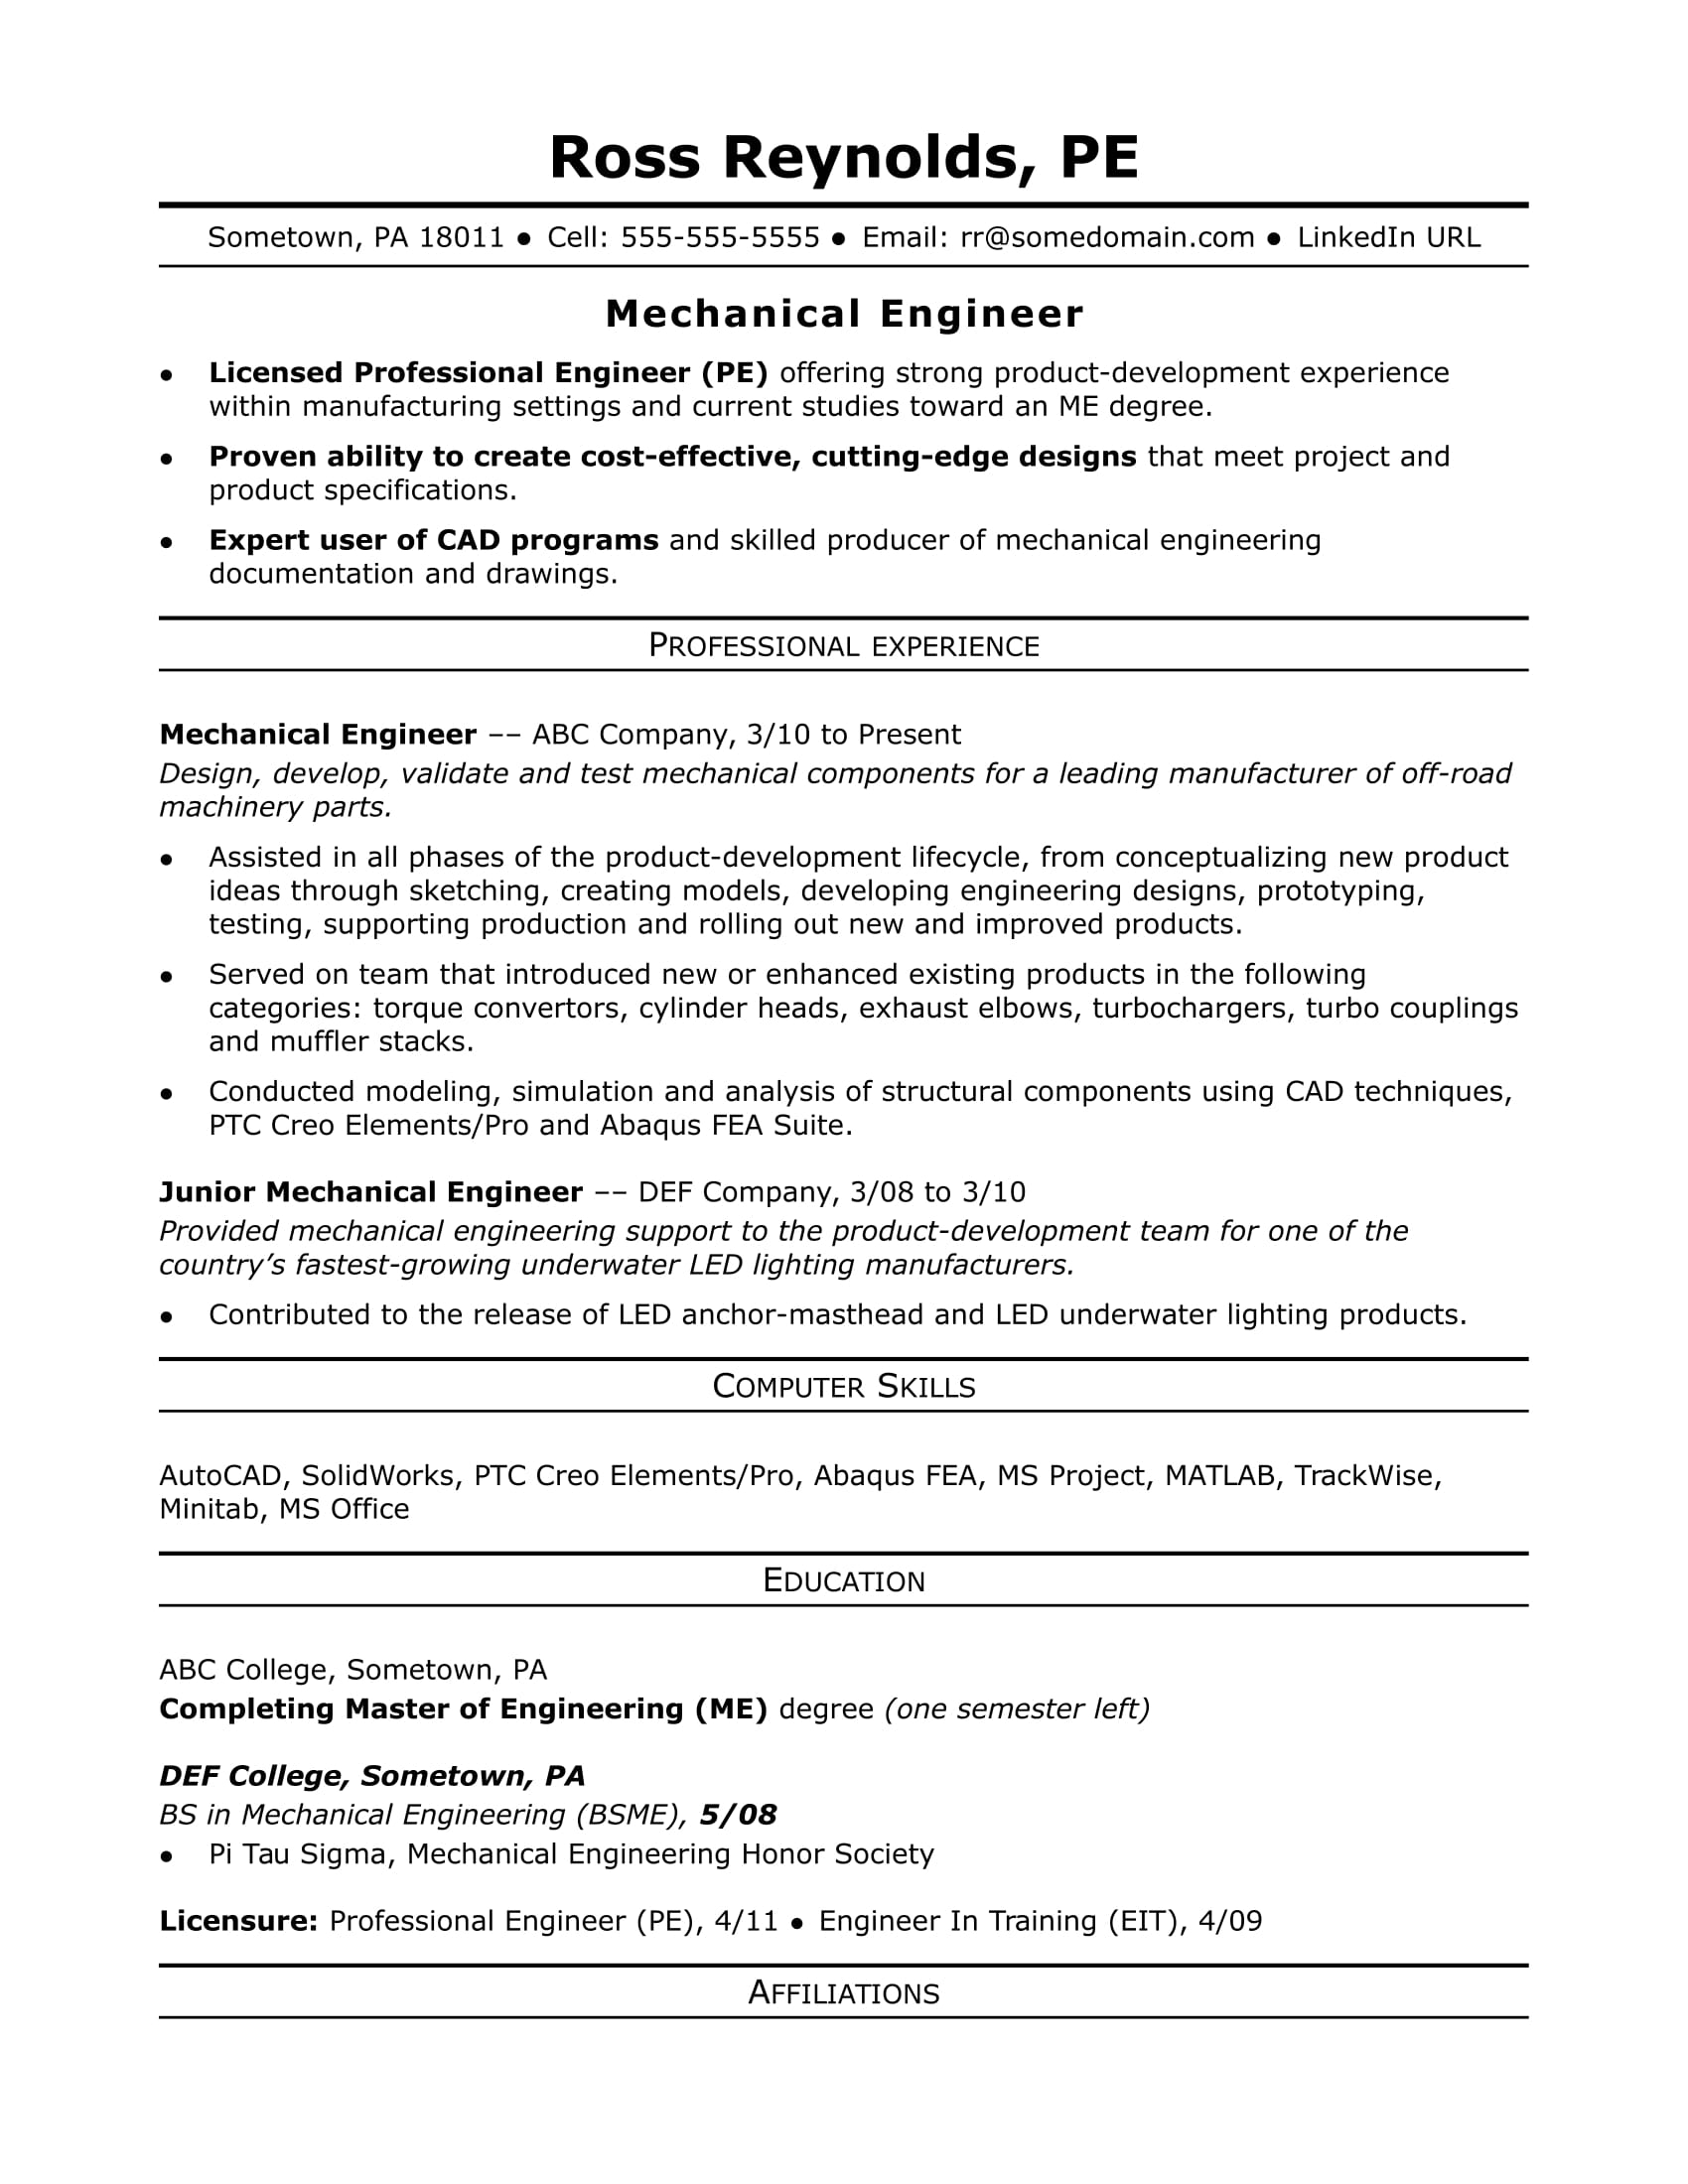 Sample Resume For A Midlevel Mechanical Engineer  Affiliations On Resume